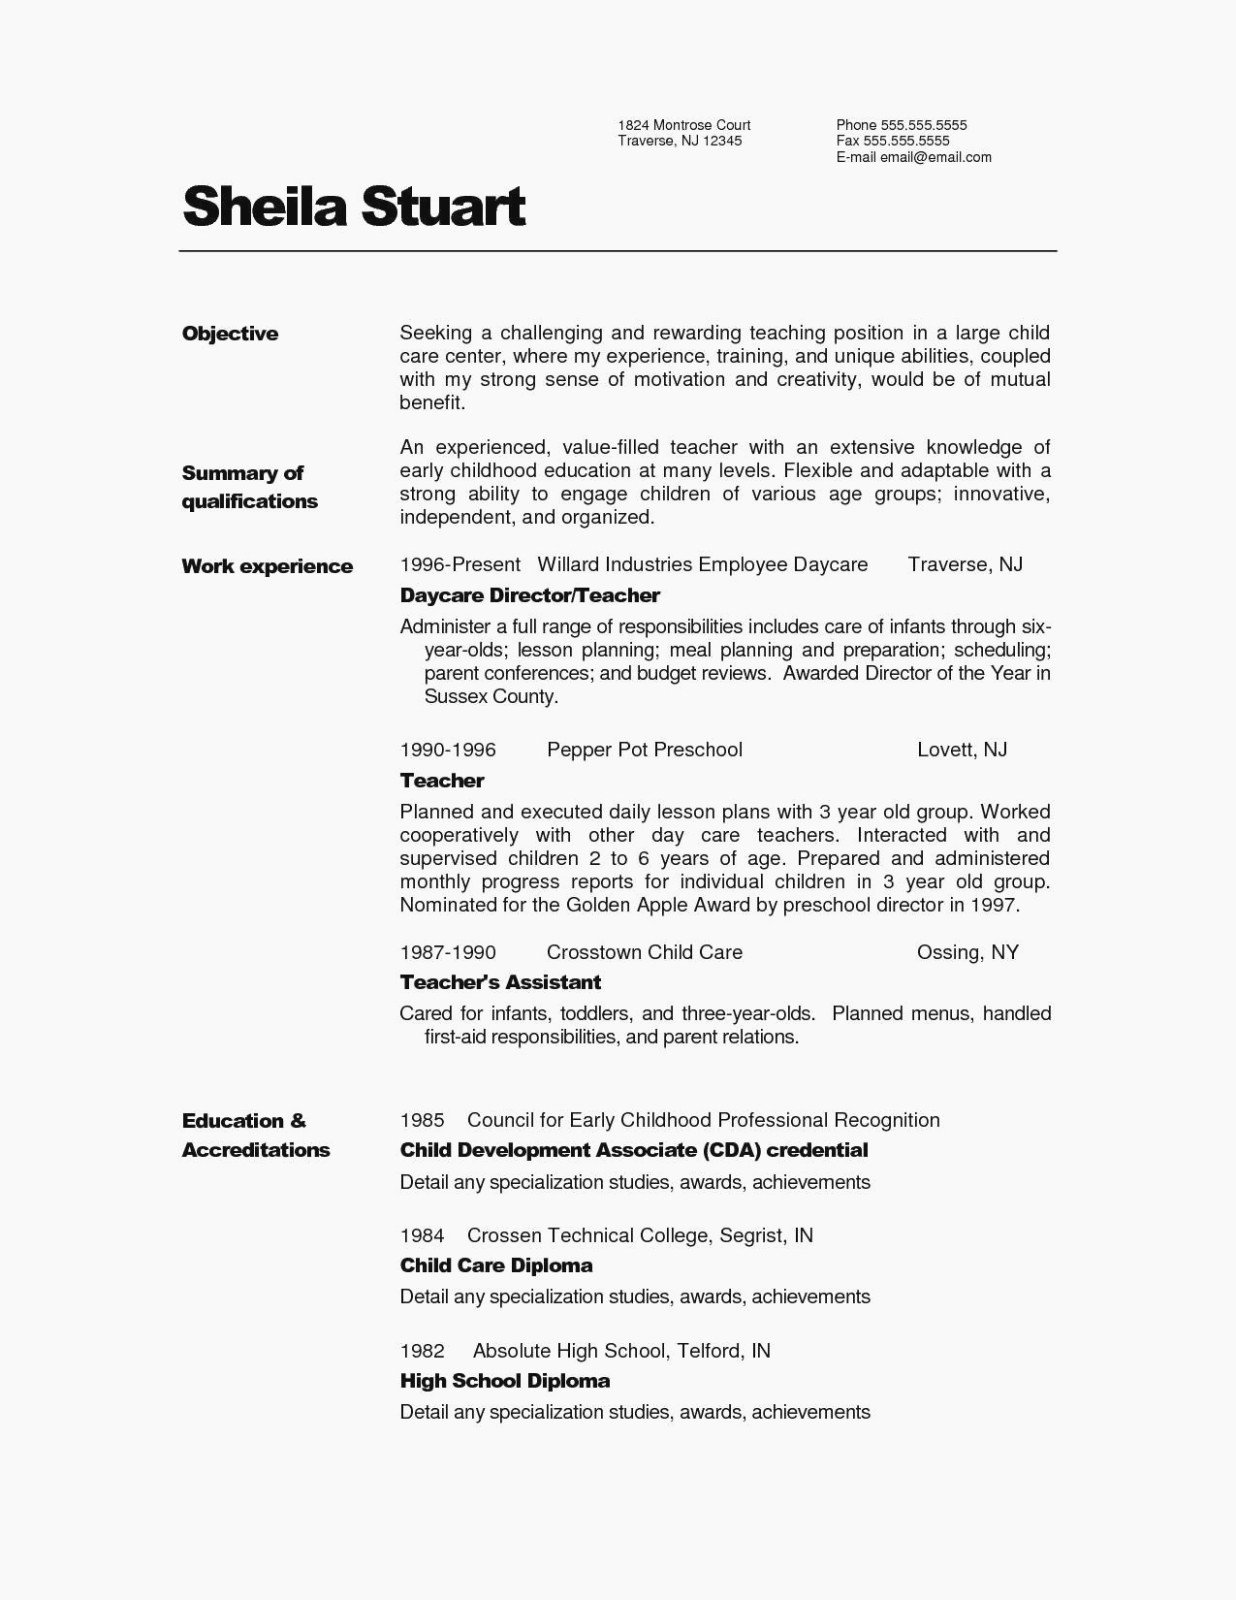 Artist Resume Template Word Beautiful Most Effective Ways to